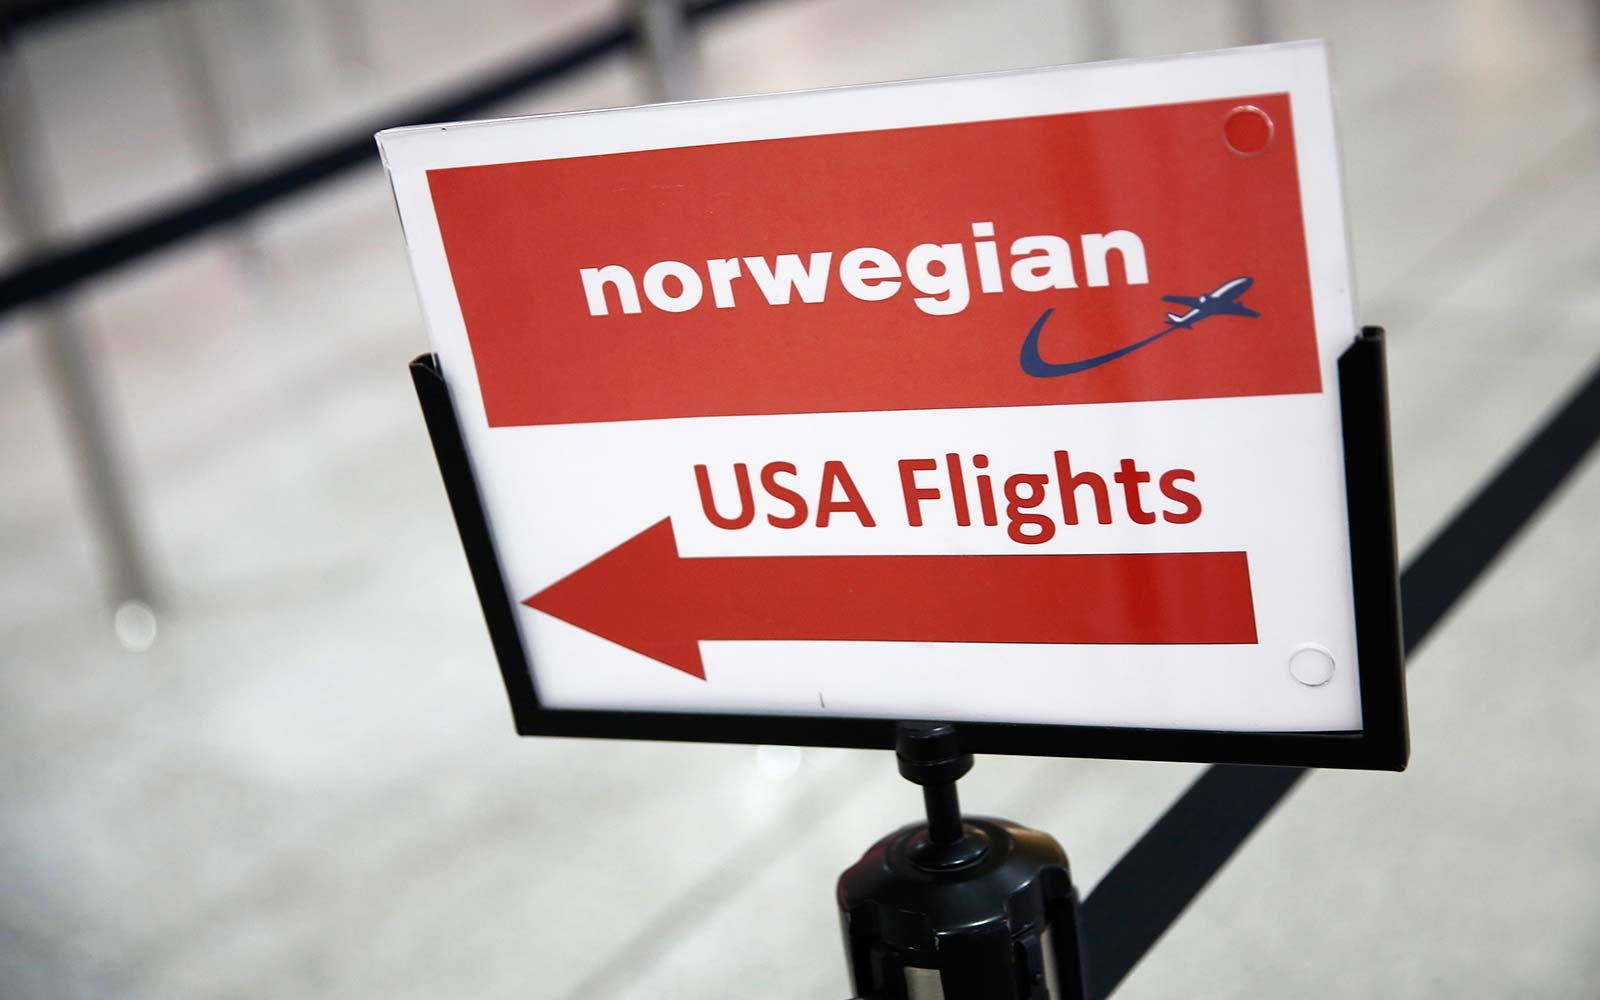 Norwegian Air Shuttle Airlines USA Flight Permit